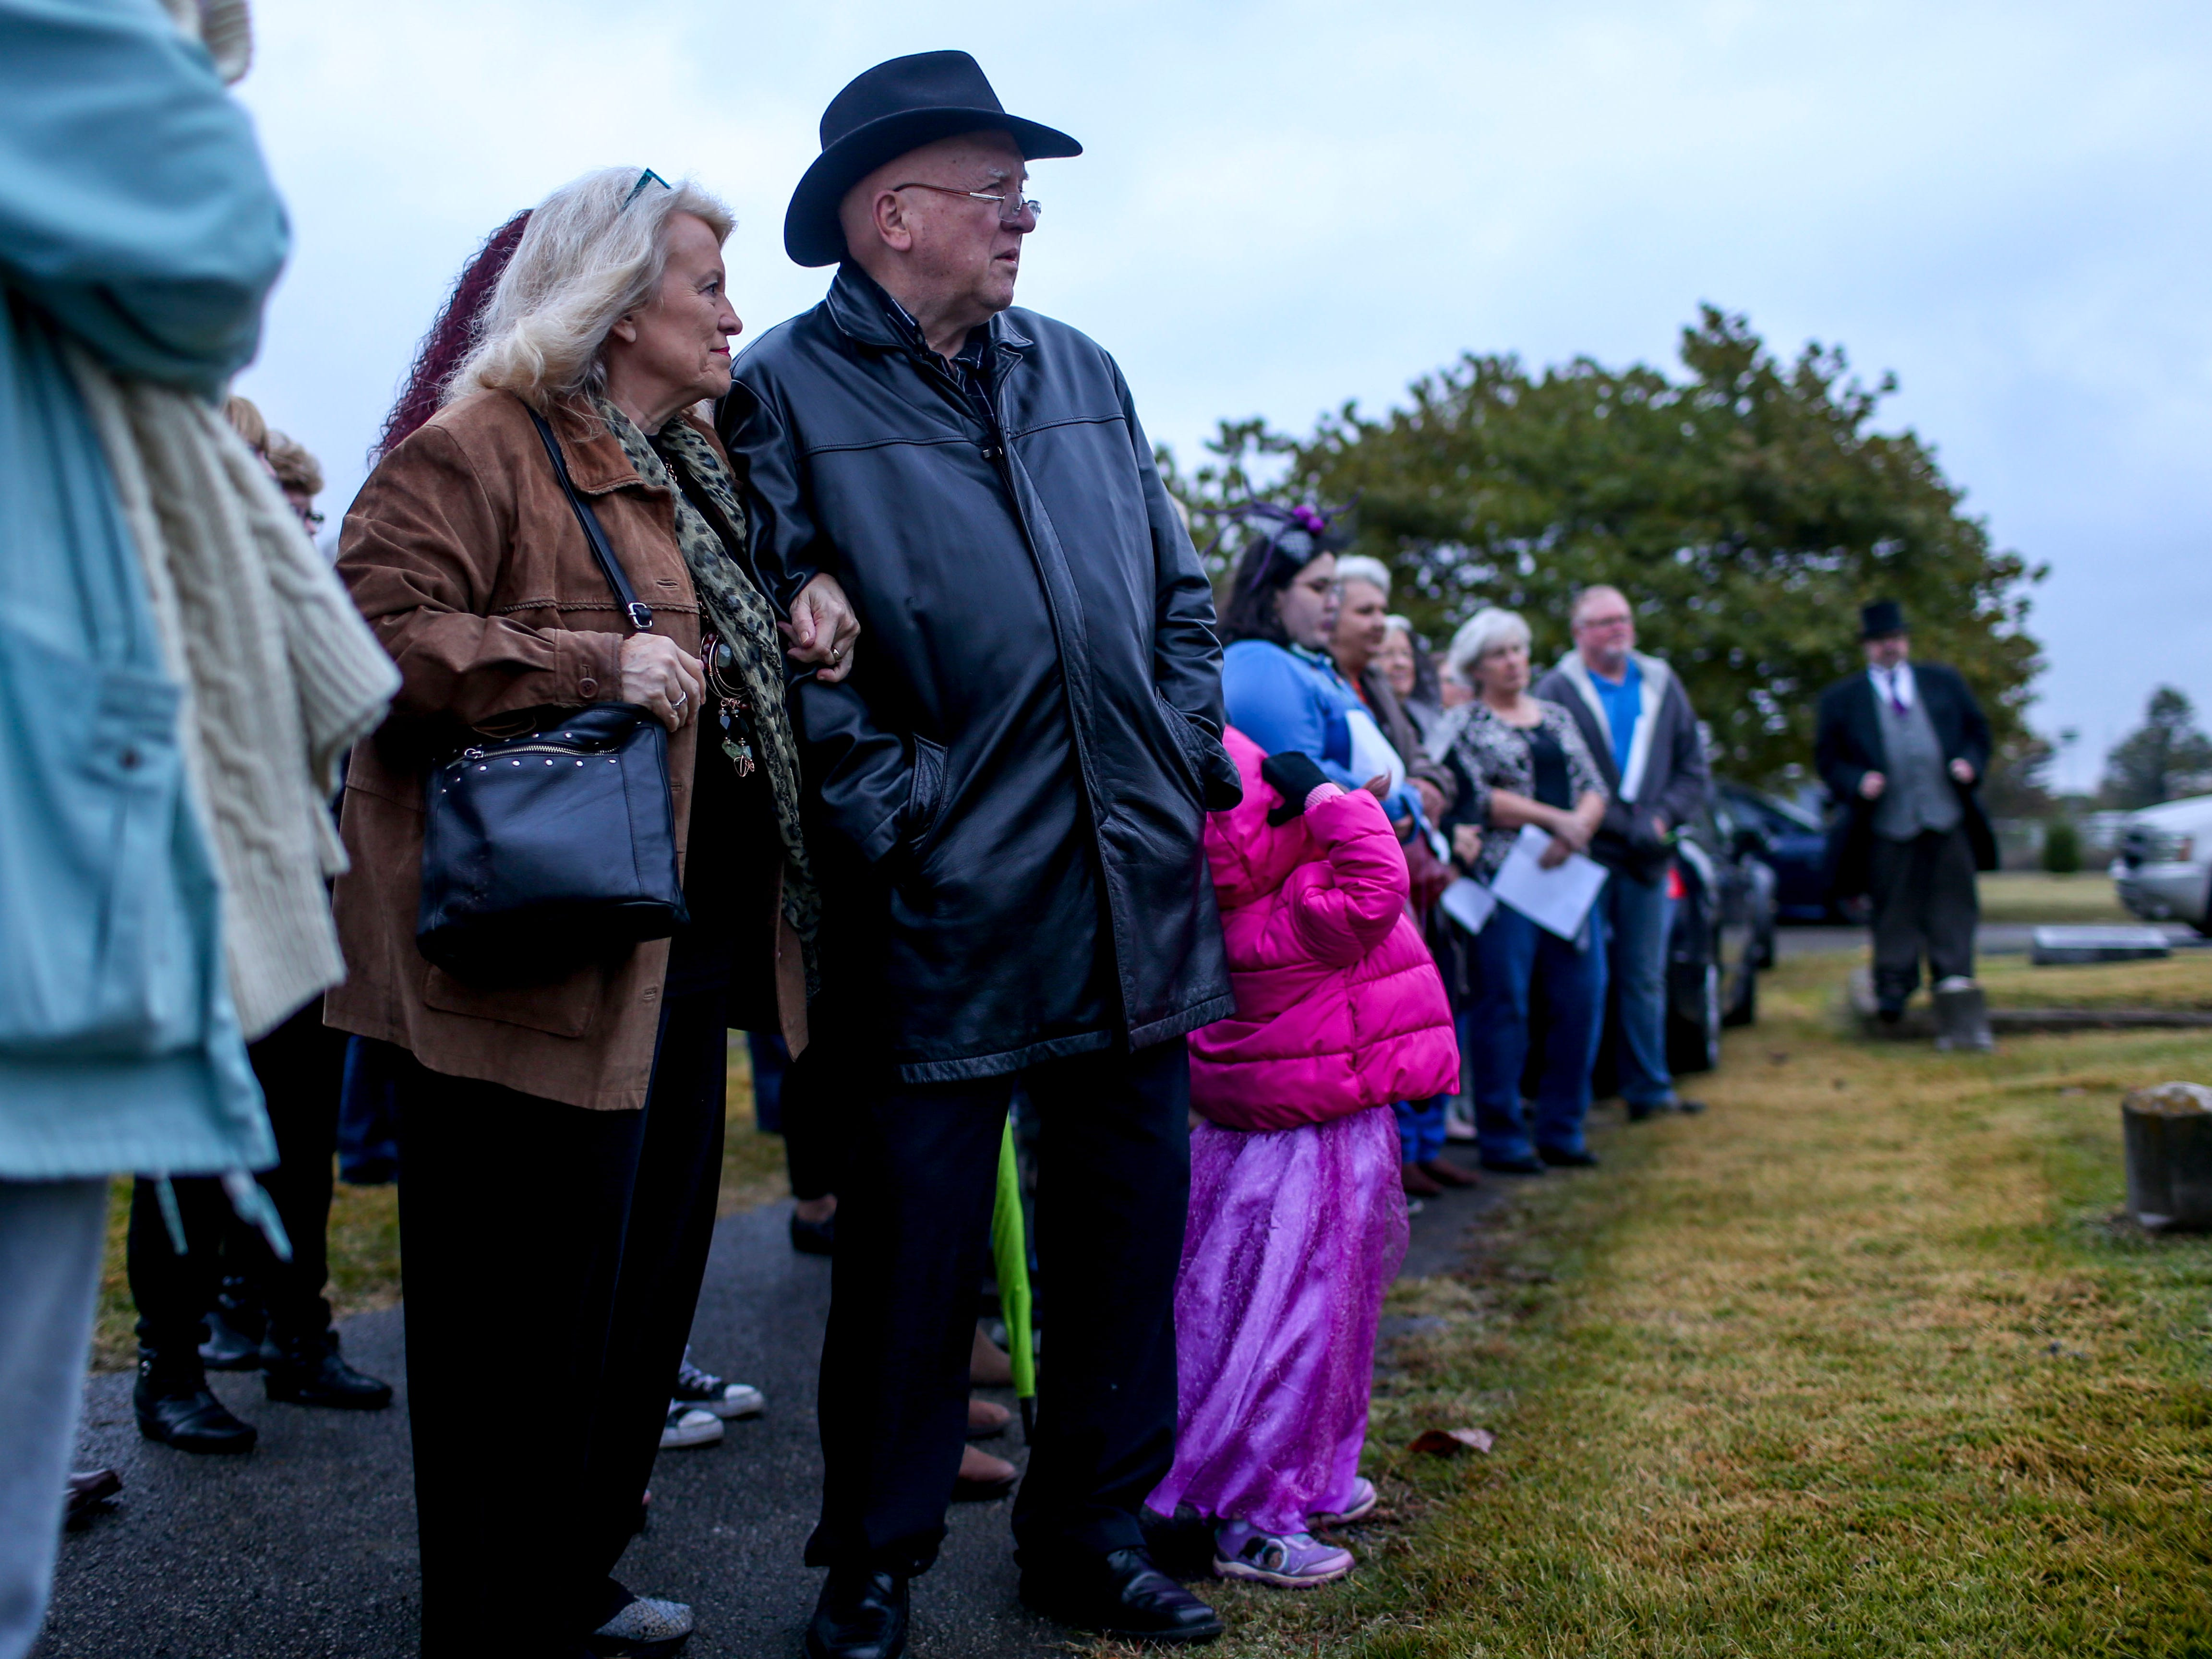 Visitors listen to monologues from people presenting from the perspective of different historical figures during Ghost Walk tour at Riverside Cemetery in Jackson, Tenn., on Friday, Oct. 26, 2018.